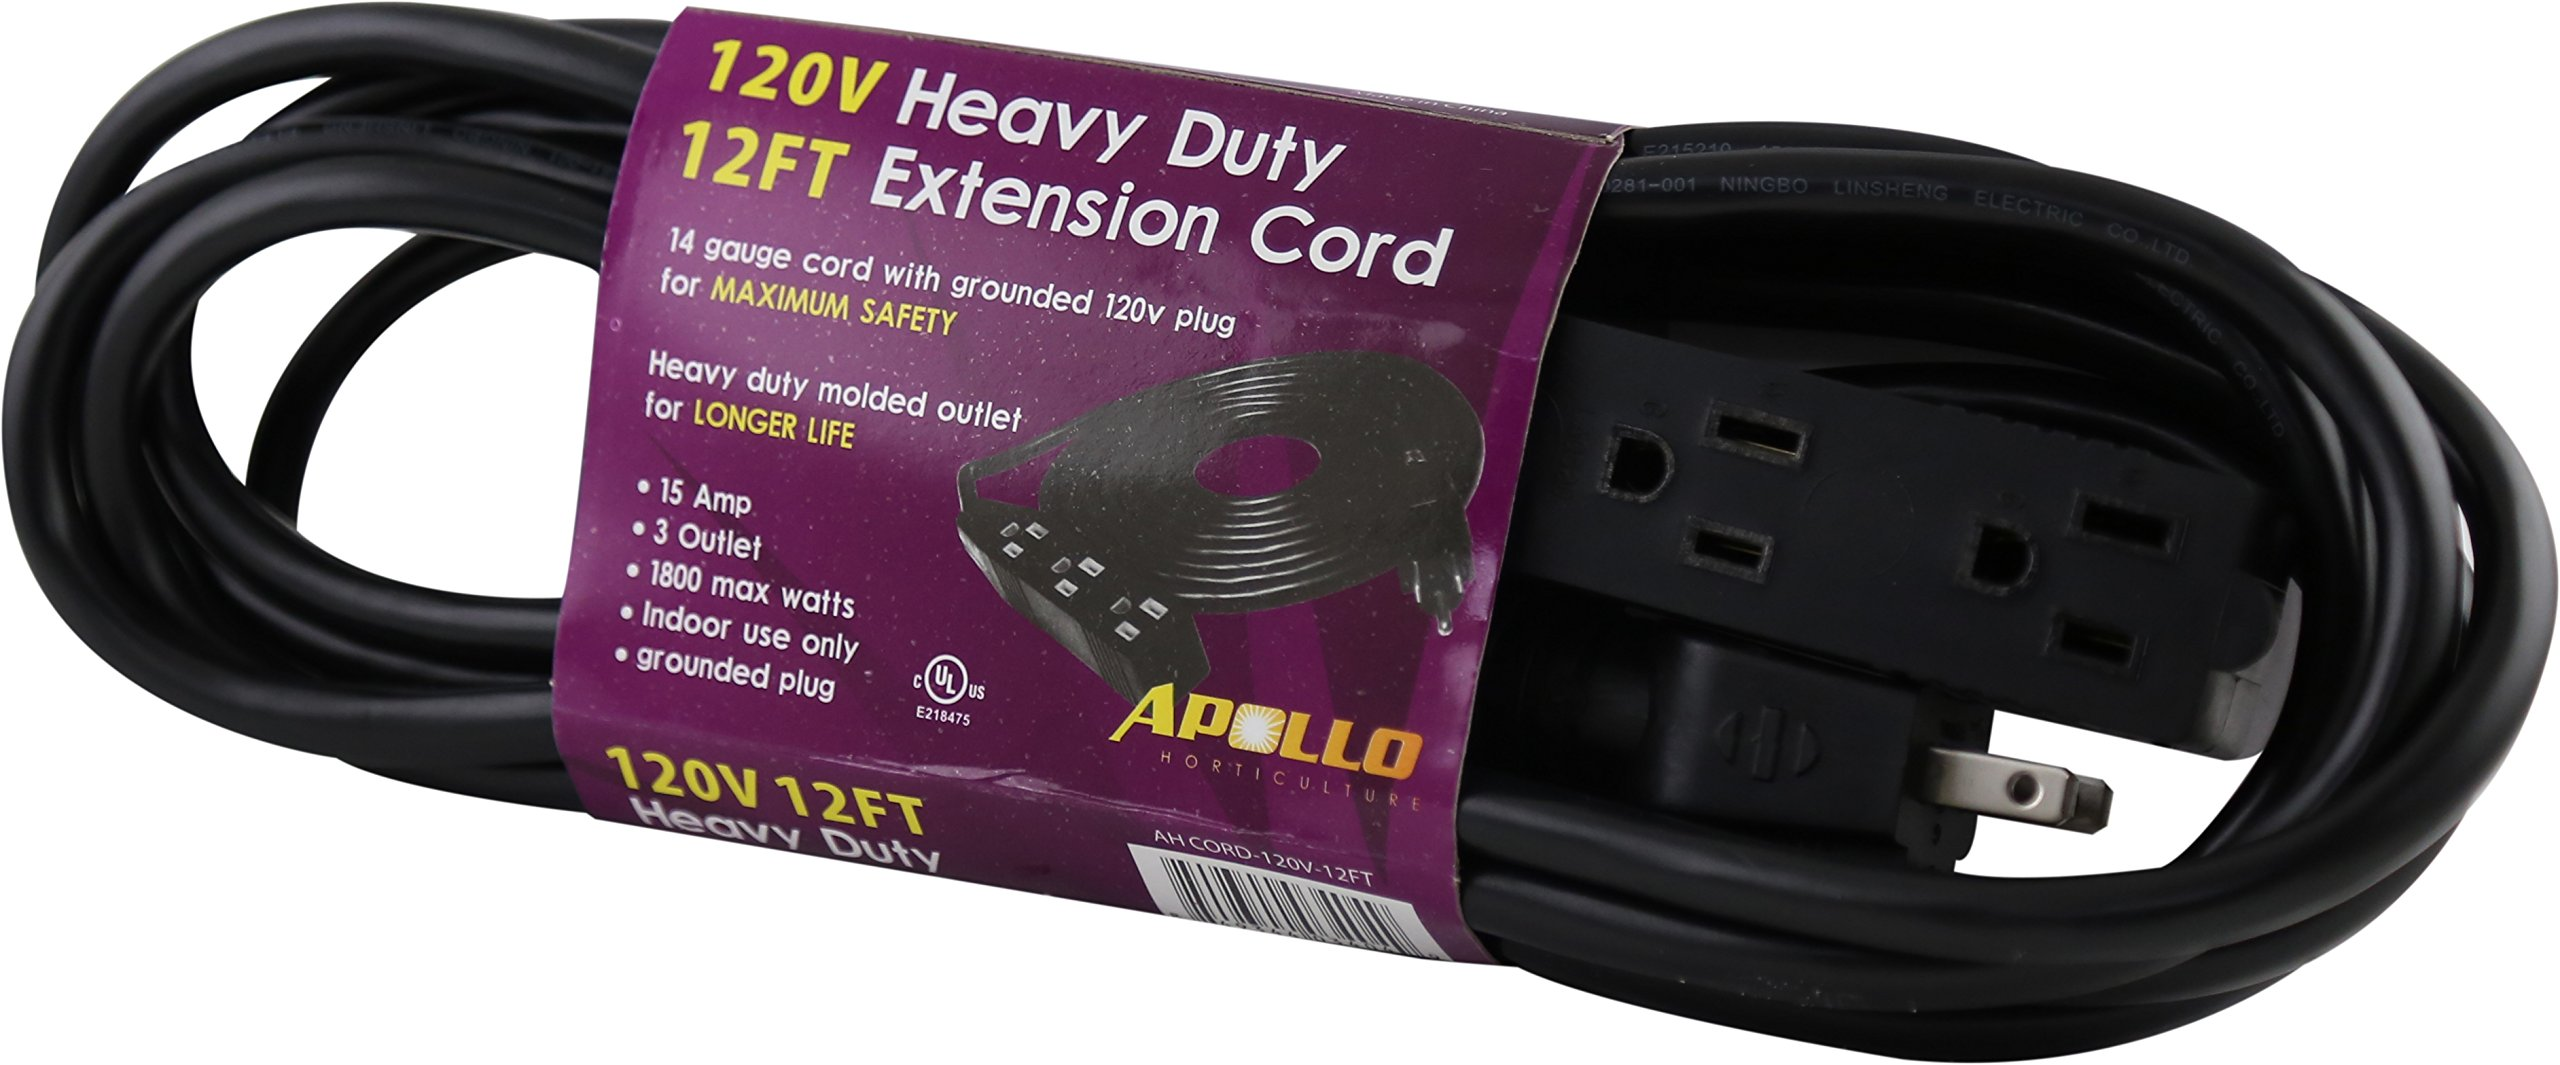 Apollo Horticulture 14 Gauge 120V Heavy Duty 12ft Extension Cord with 3 Outlet Power Strip